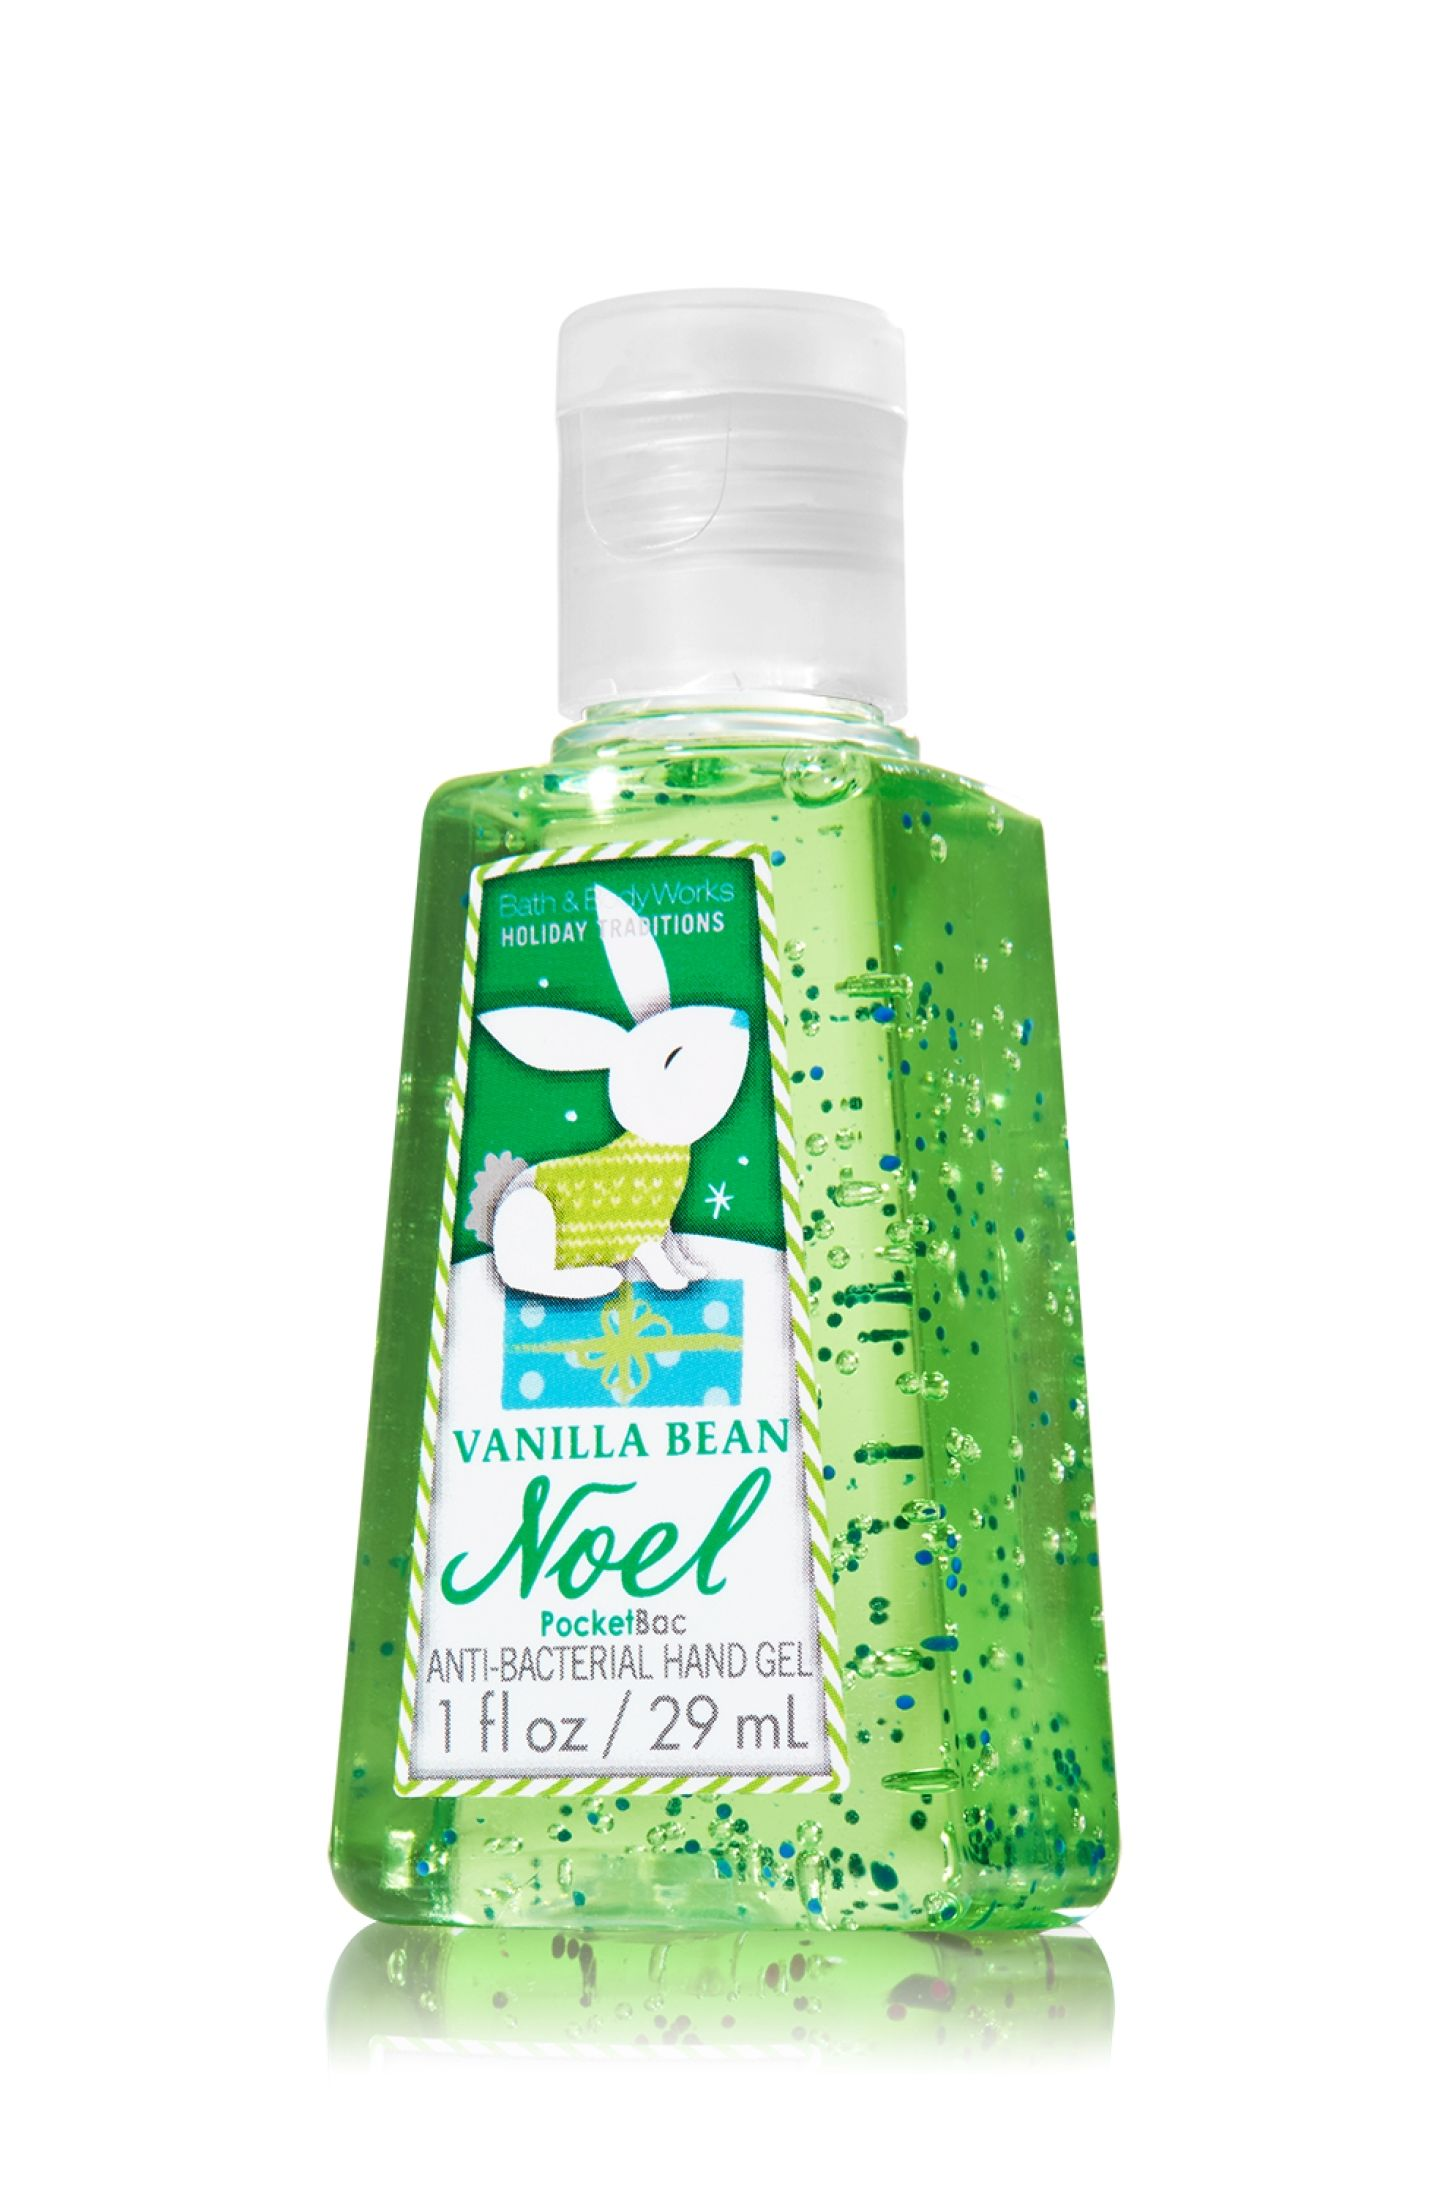 Vanilla Bean Noel Hand Sanitizer Bath Body Works Bath Body